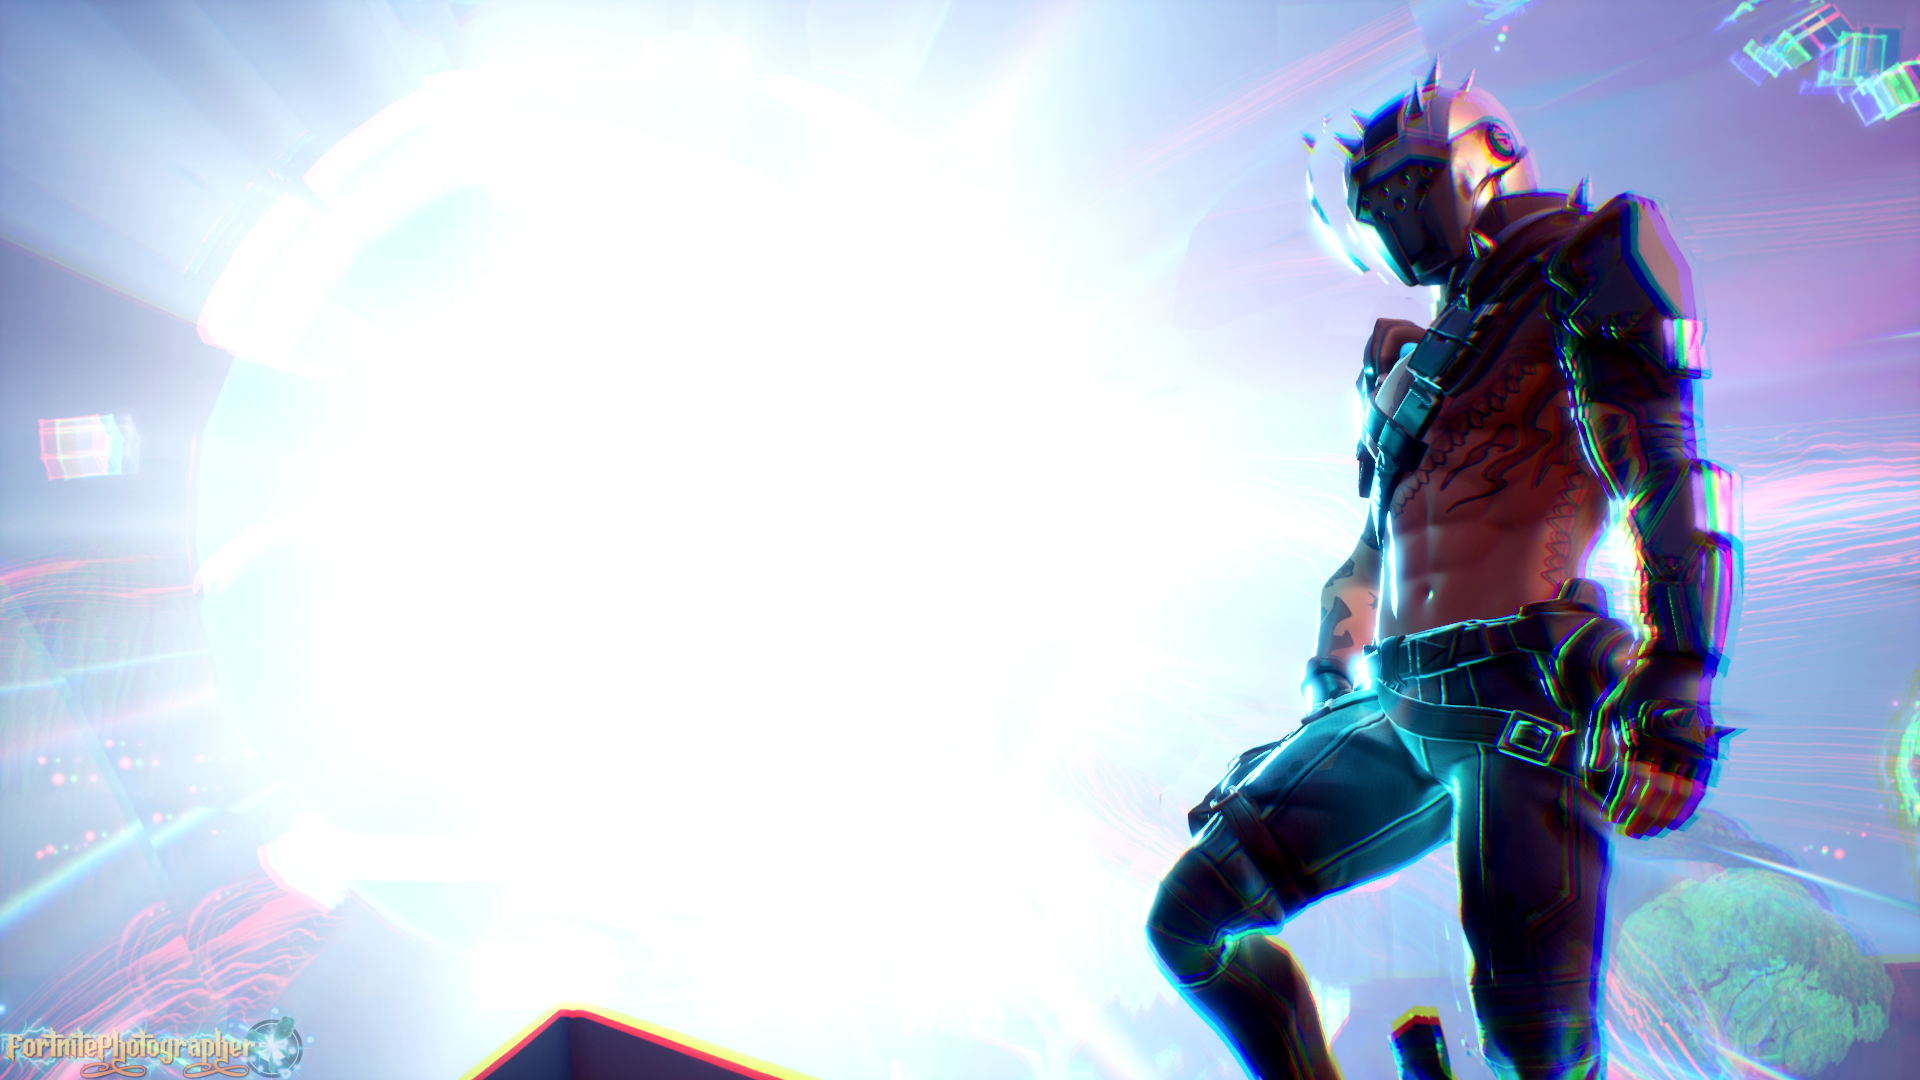 A New Era Some More Shots I Hope You Like Thanks For All The Support And Sharing X Lord Set 01 Epic Games Fortnite Deadpool Wallpaper Naruto Art